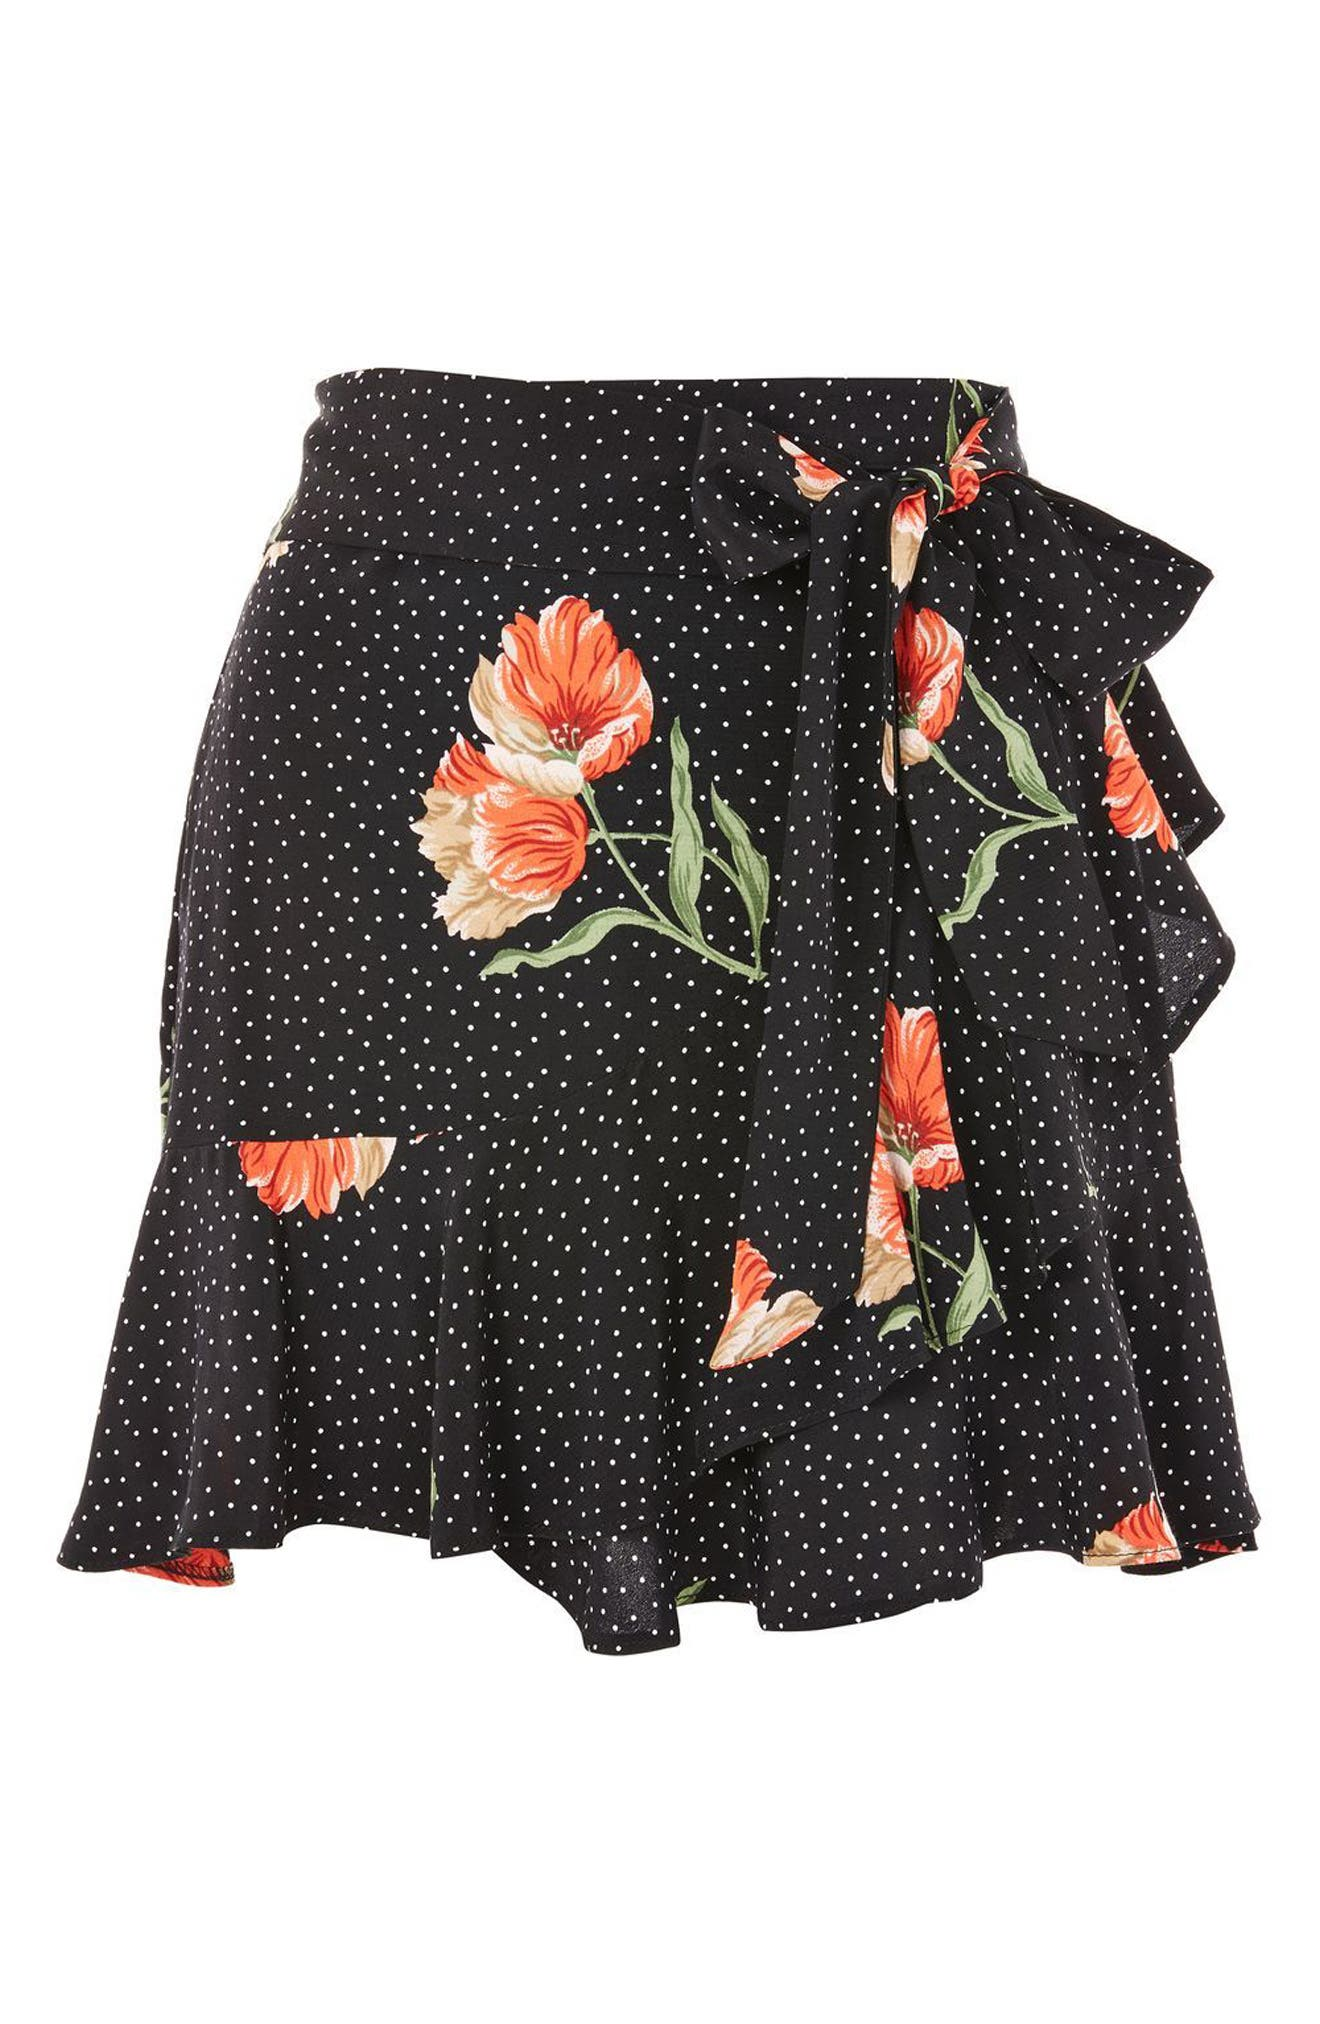 Alternate Image 3  - Topshop Spot Flower Ruffle Miniskirt (Regular & Petite)